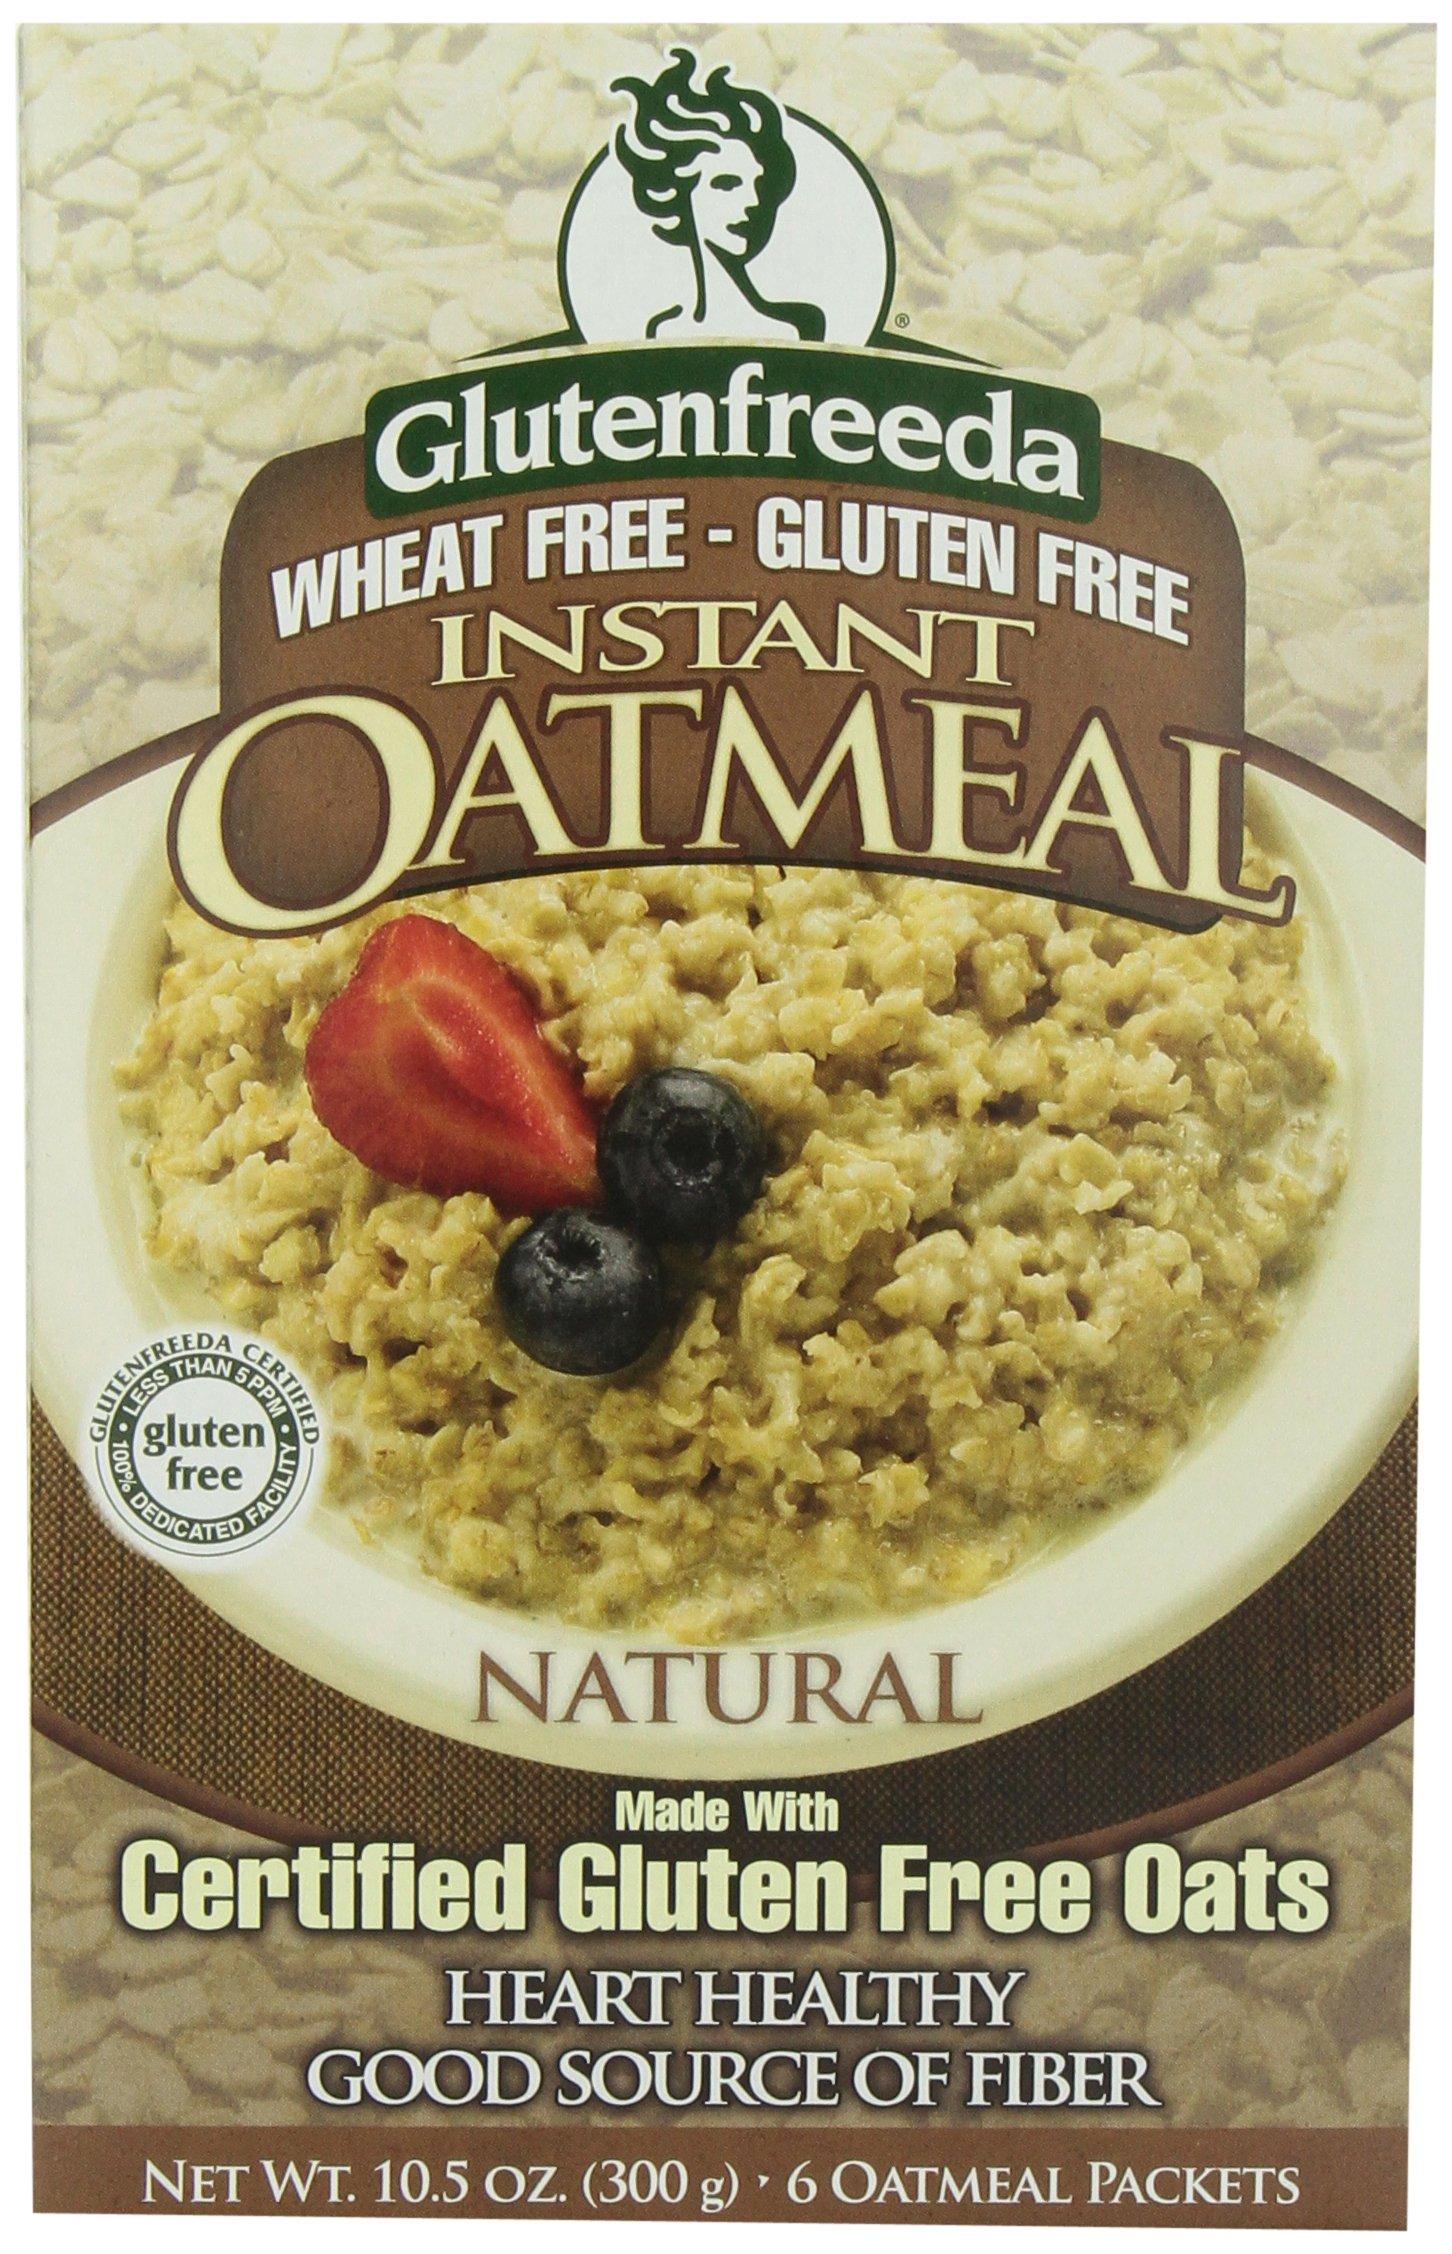 Glutenfreeda Gluten Free Instant Oatmeal, Natural, 8-packet Box, 8 Pack